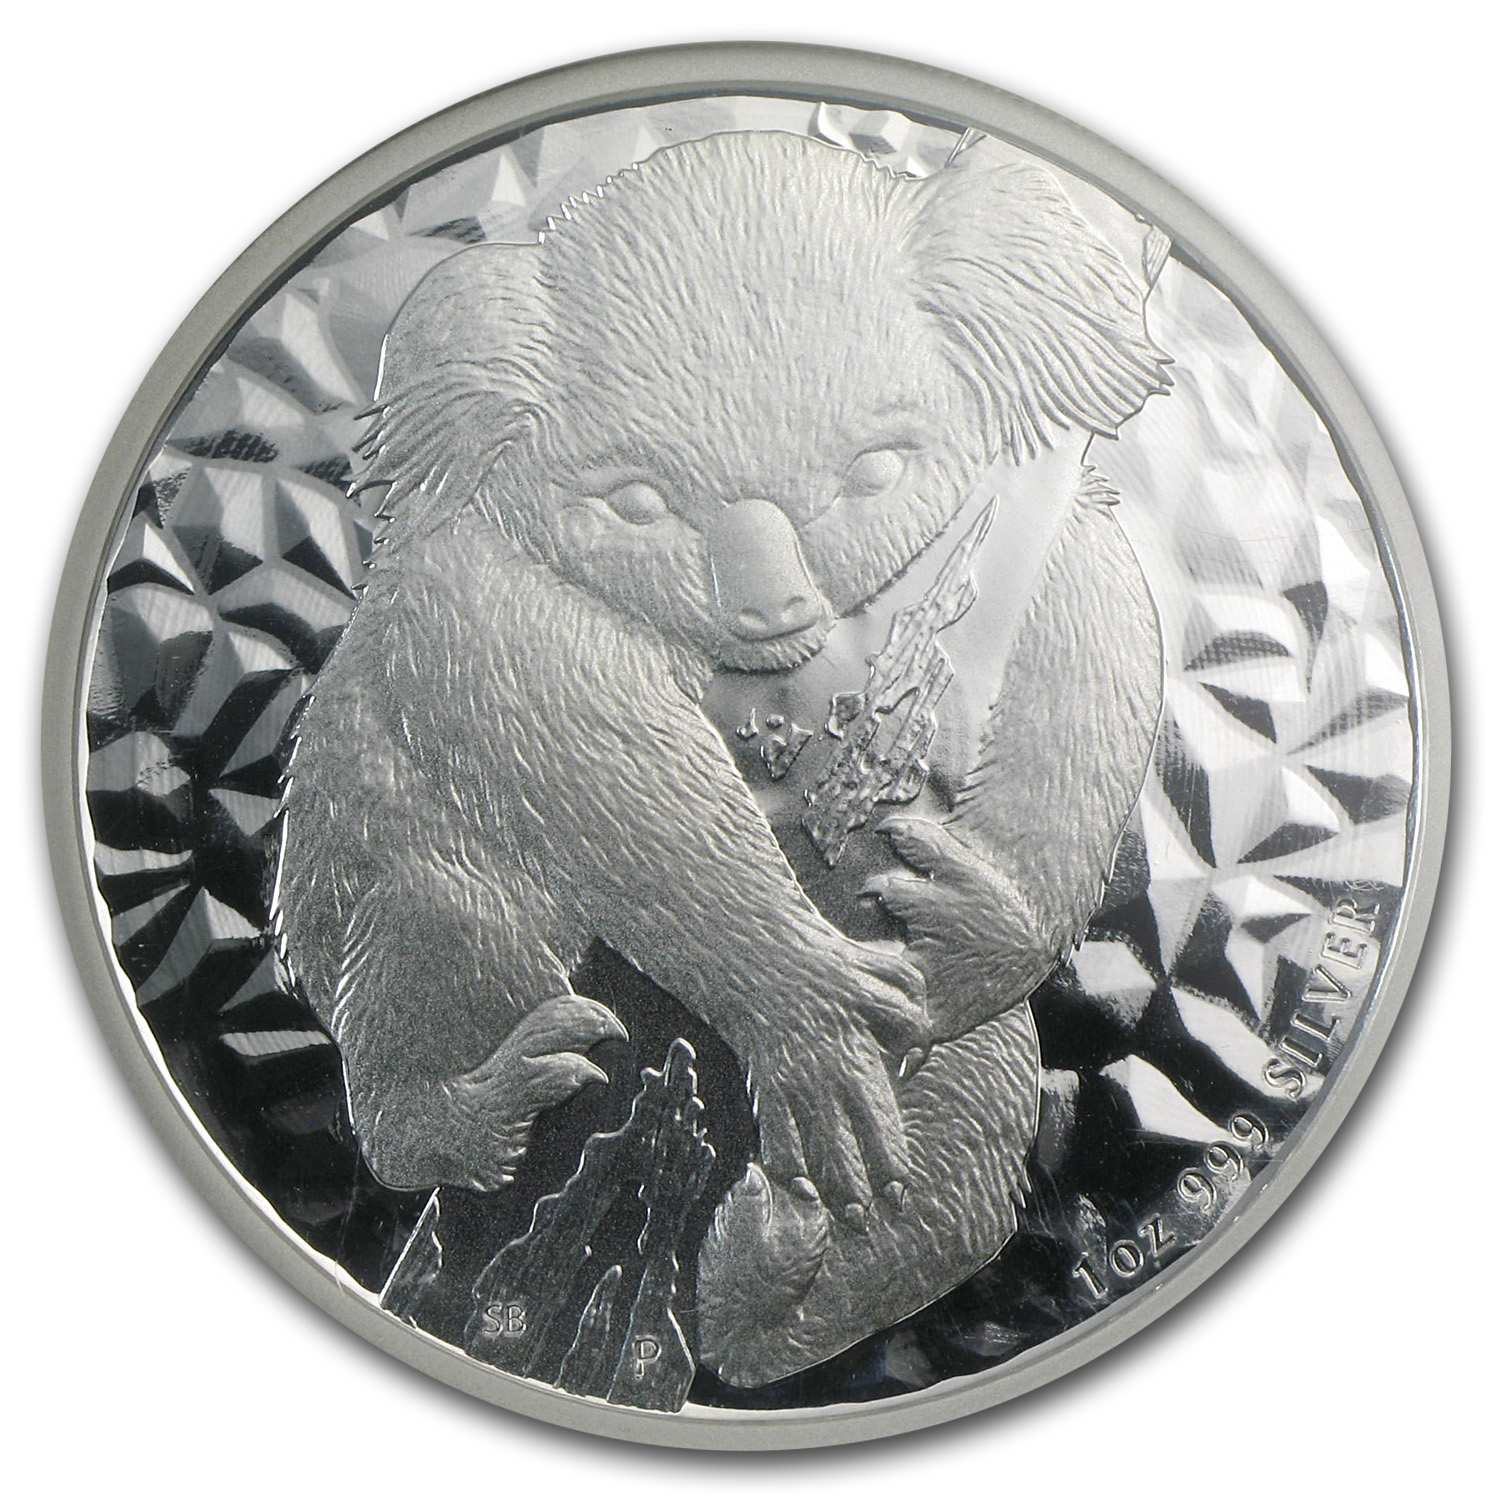 2007 1 oz Silver Australian Koala - MS-69 NGC - 1 of first 5,000